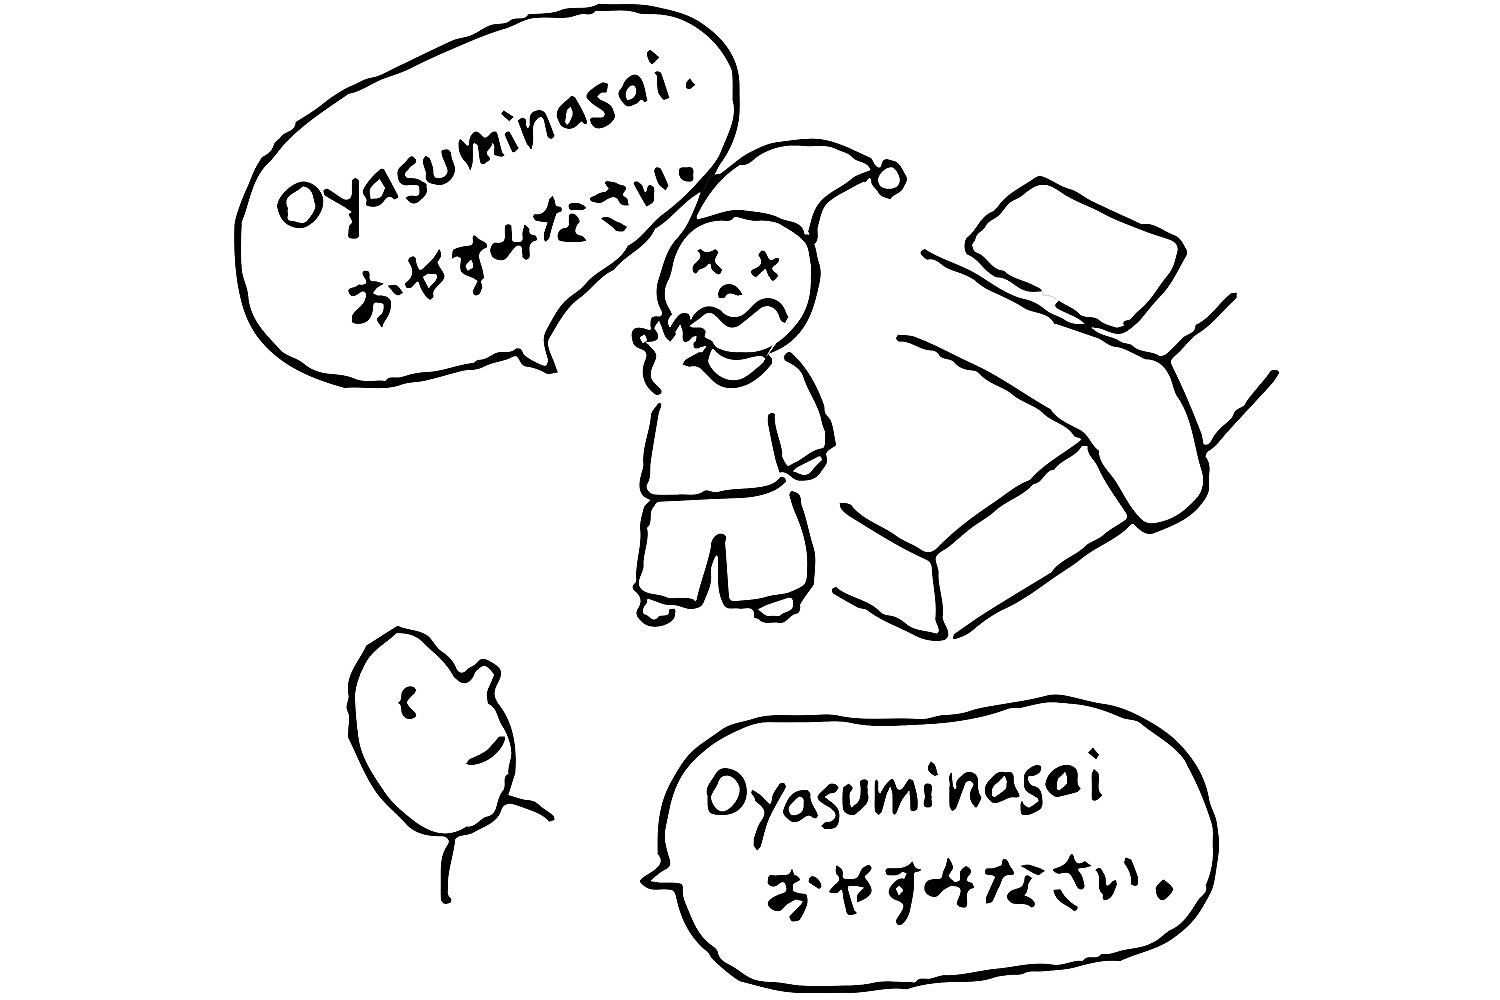 Good morning and other common japanese greetings good morning and other common japanese greetings biocorpaavc Image collections